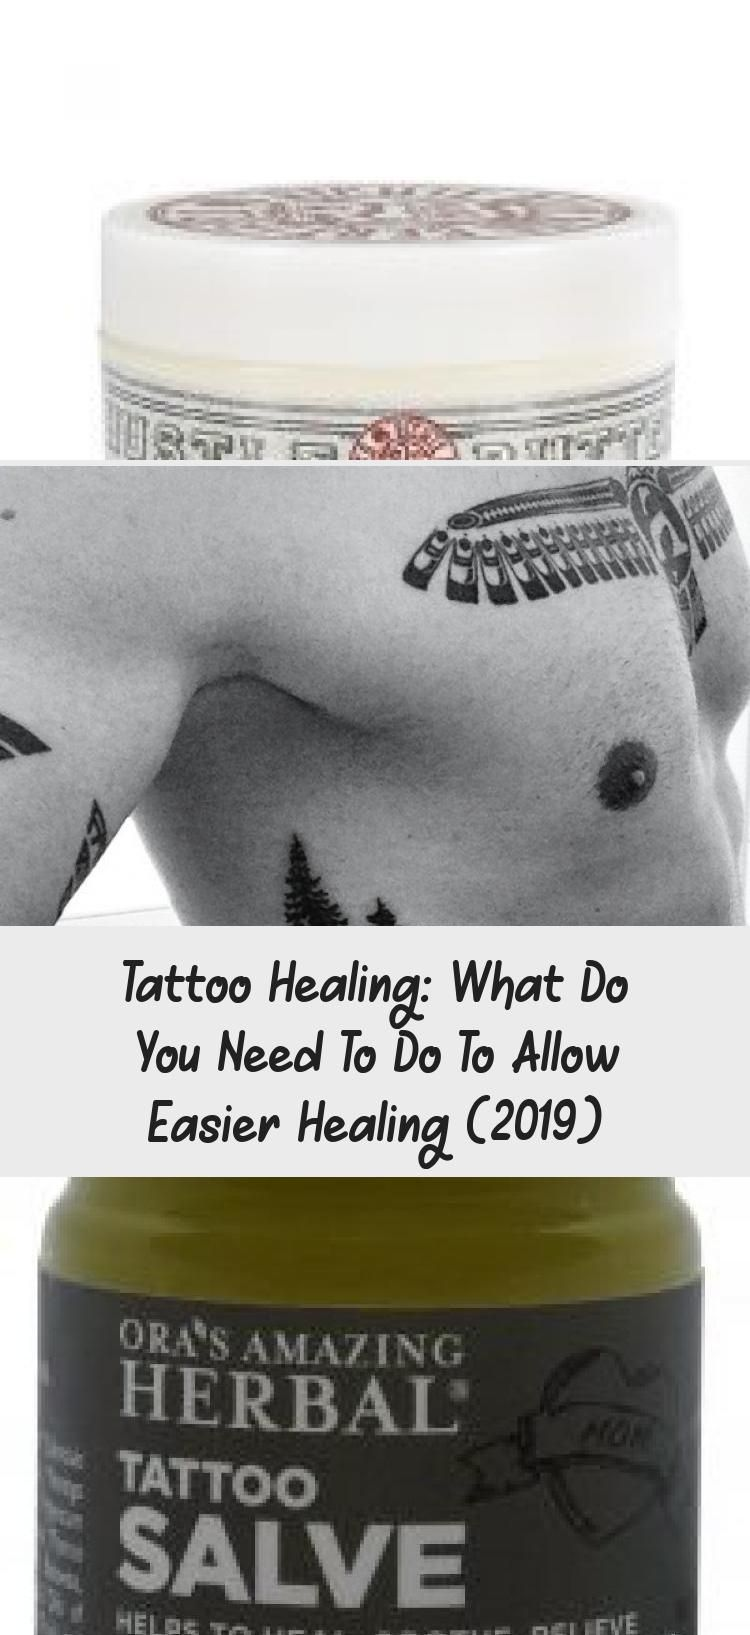 Tattoo Healing What Do You Need to Do to Allow Easier